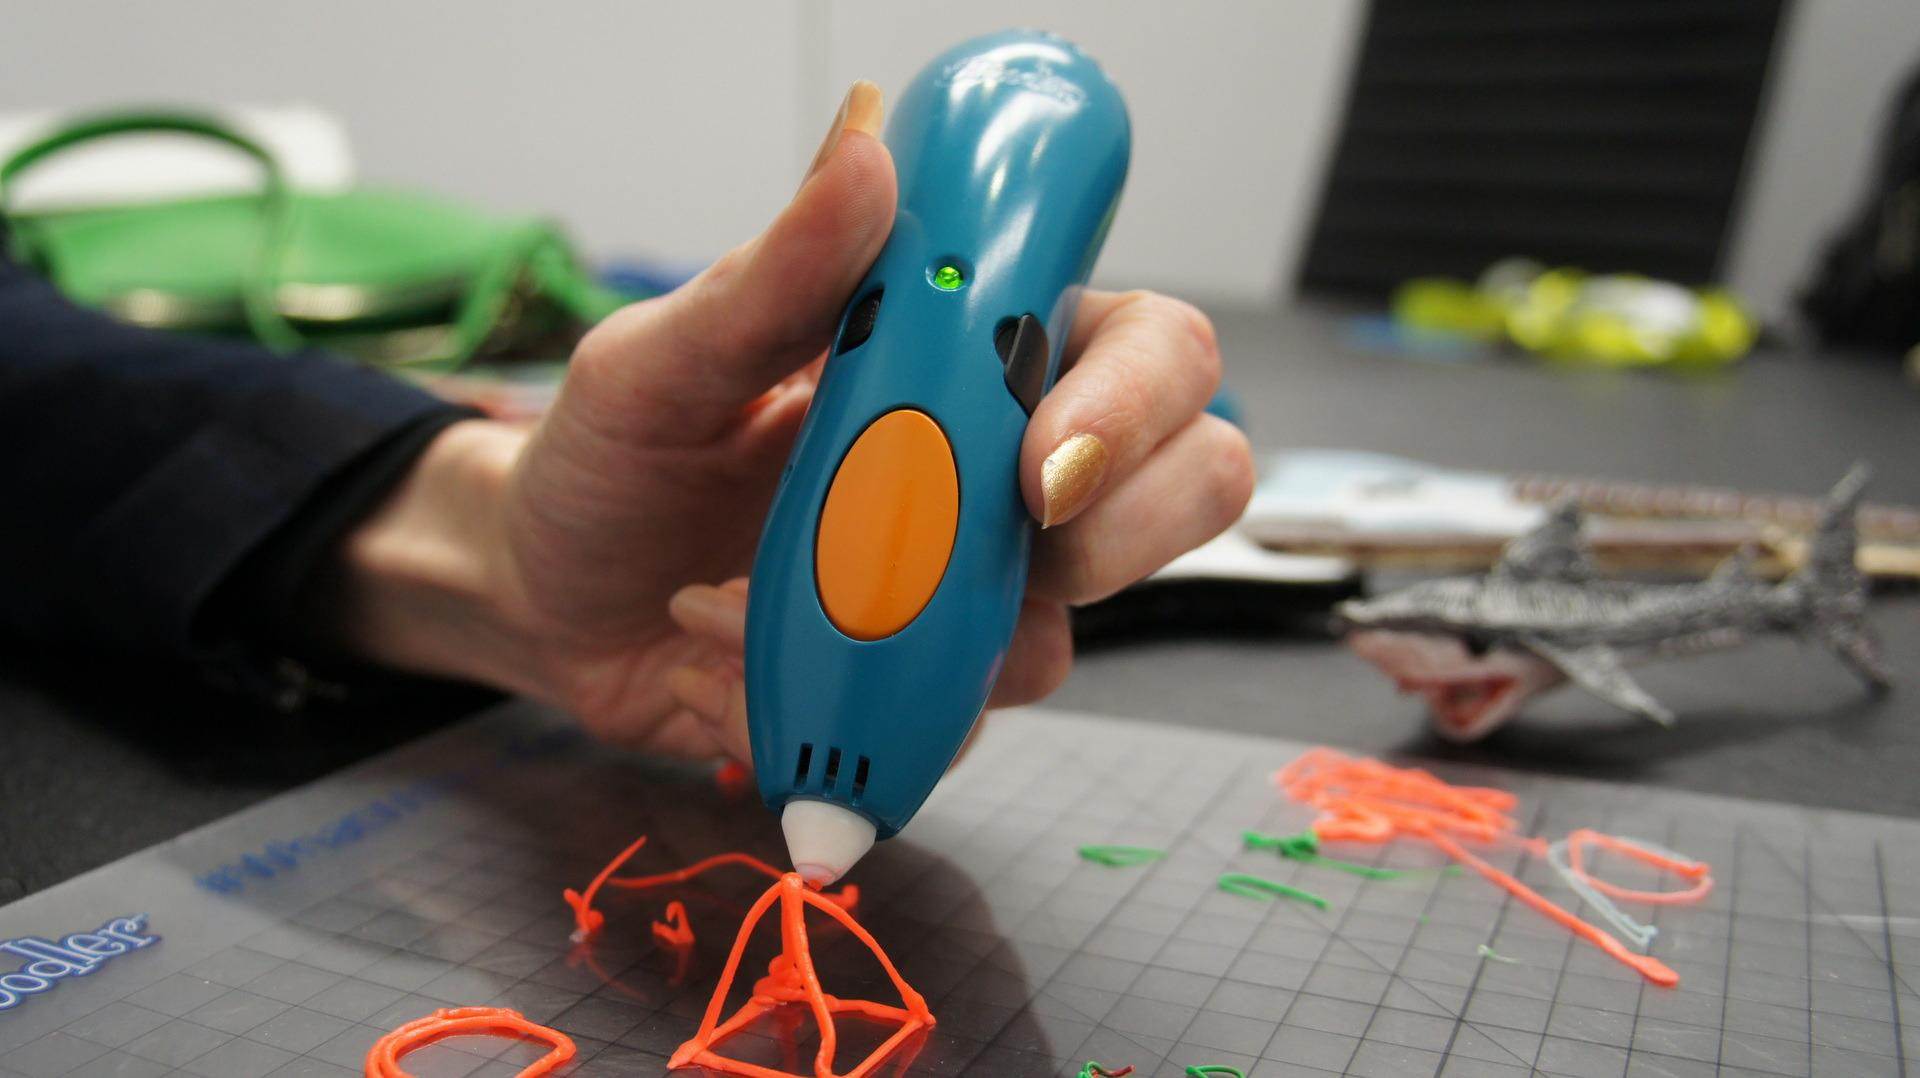 3Doodler Start makes 3D drawing kid's play